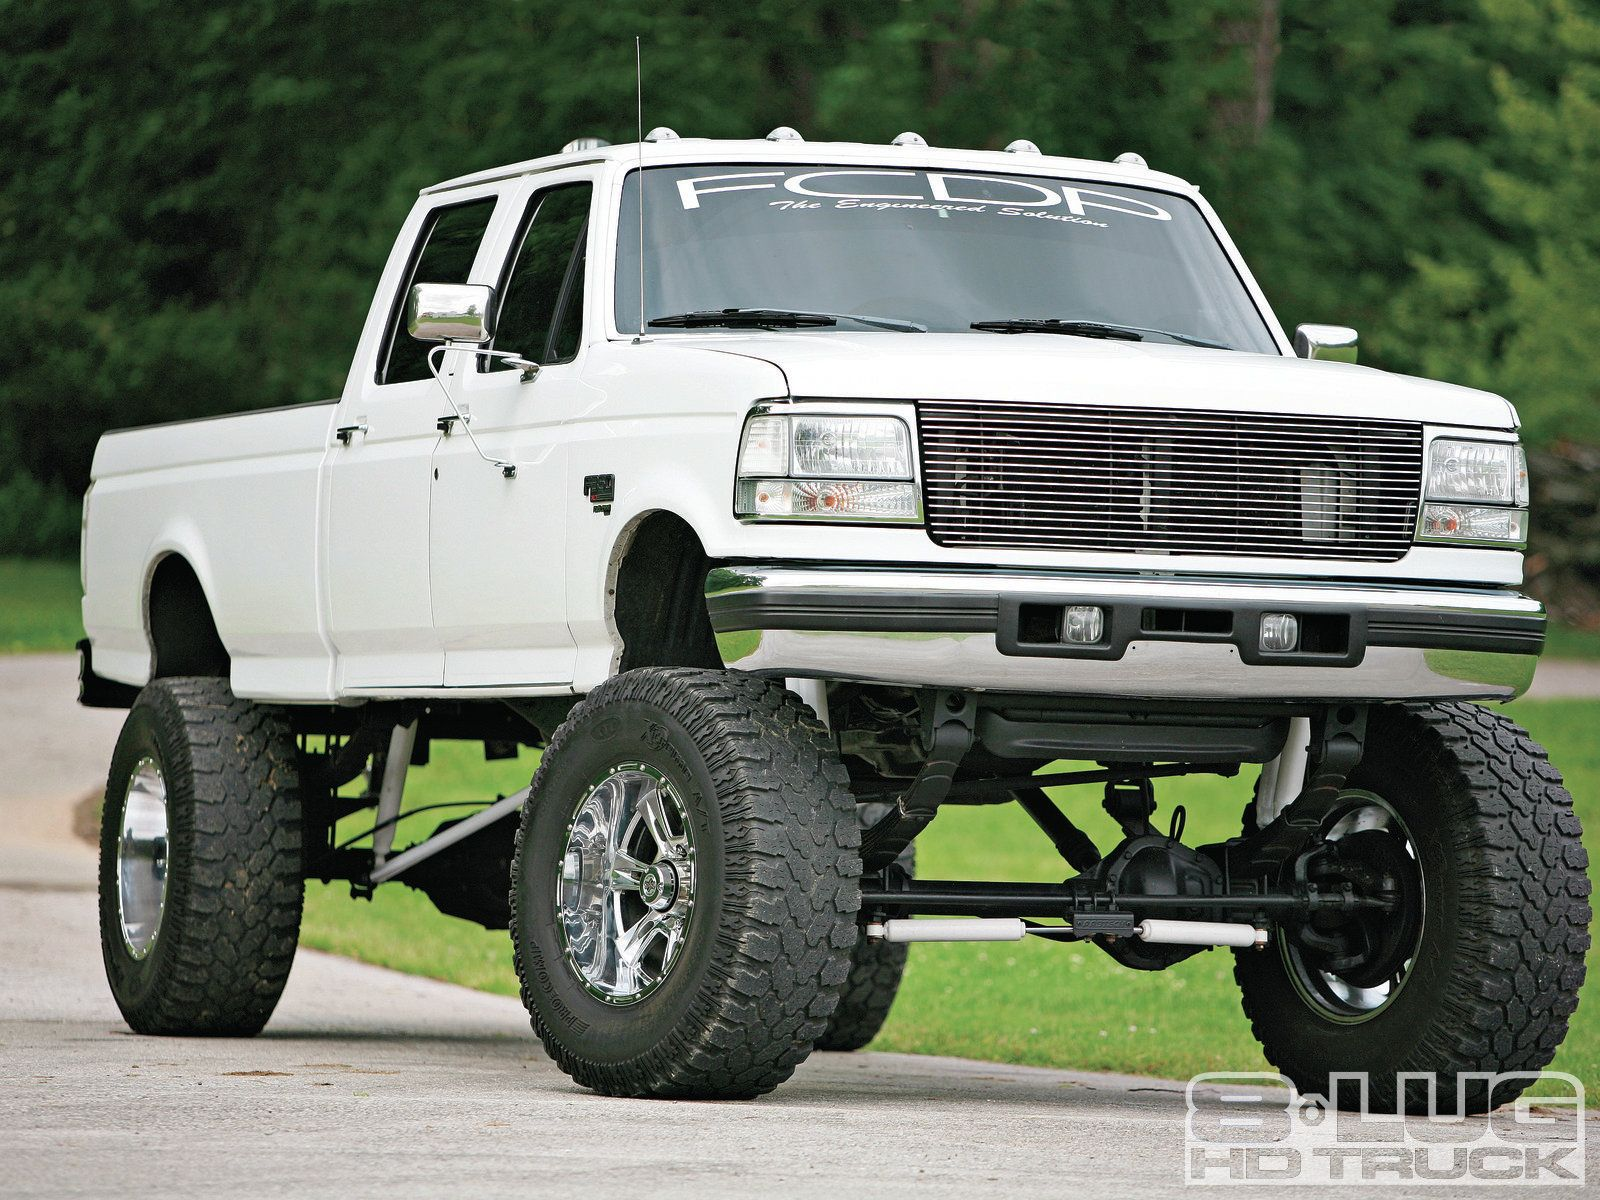 1997 Ford F350 change the grill back to stock and put some black